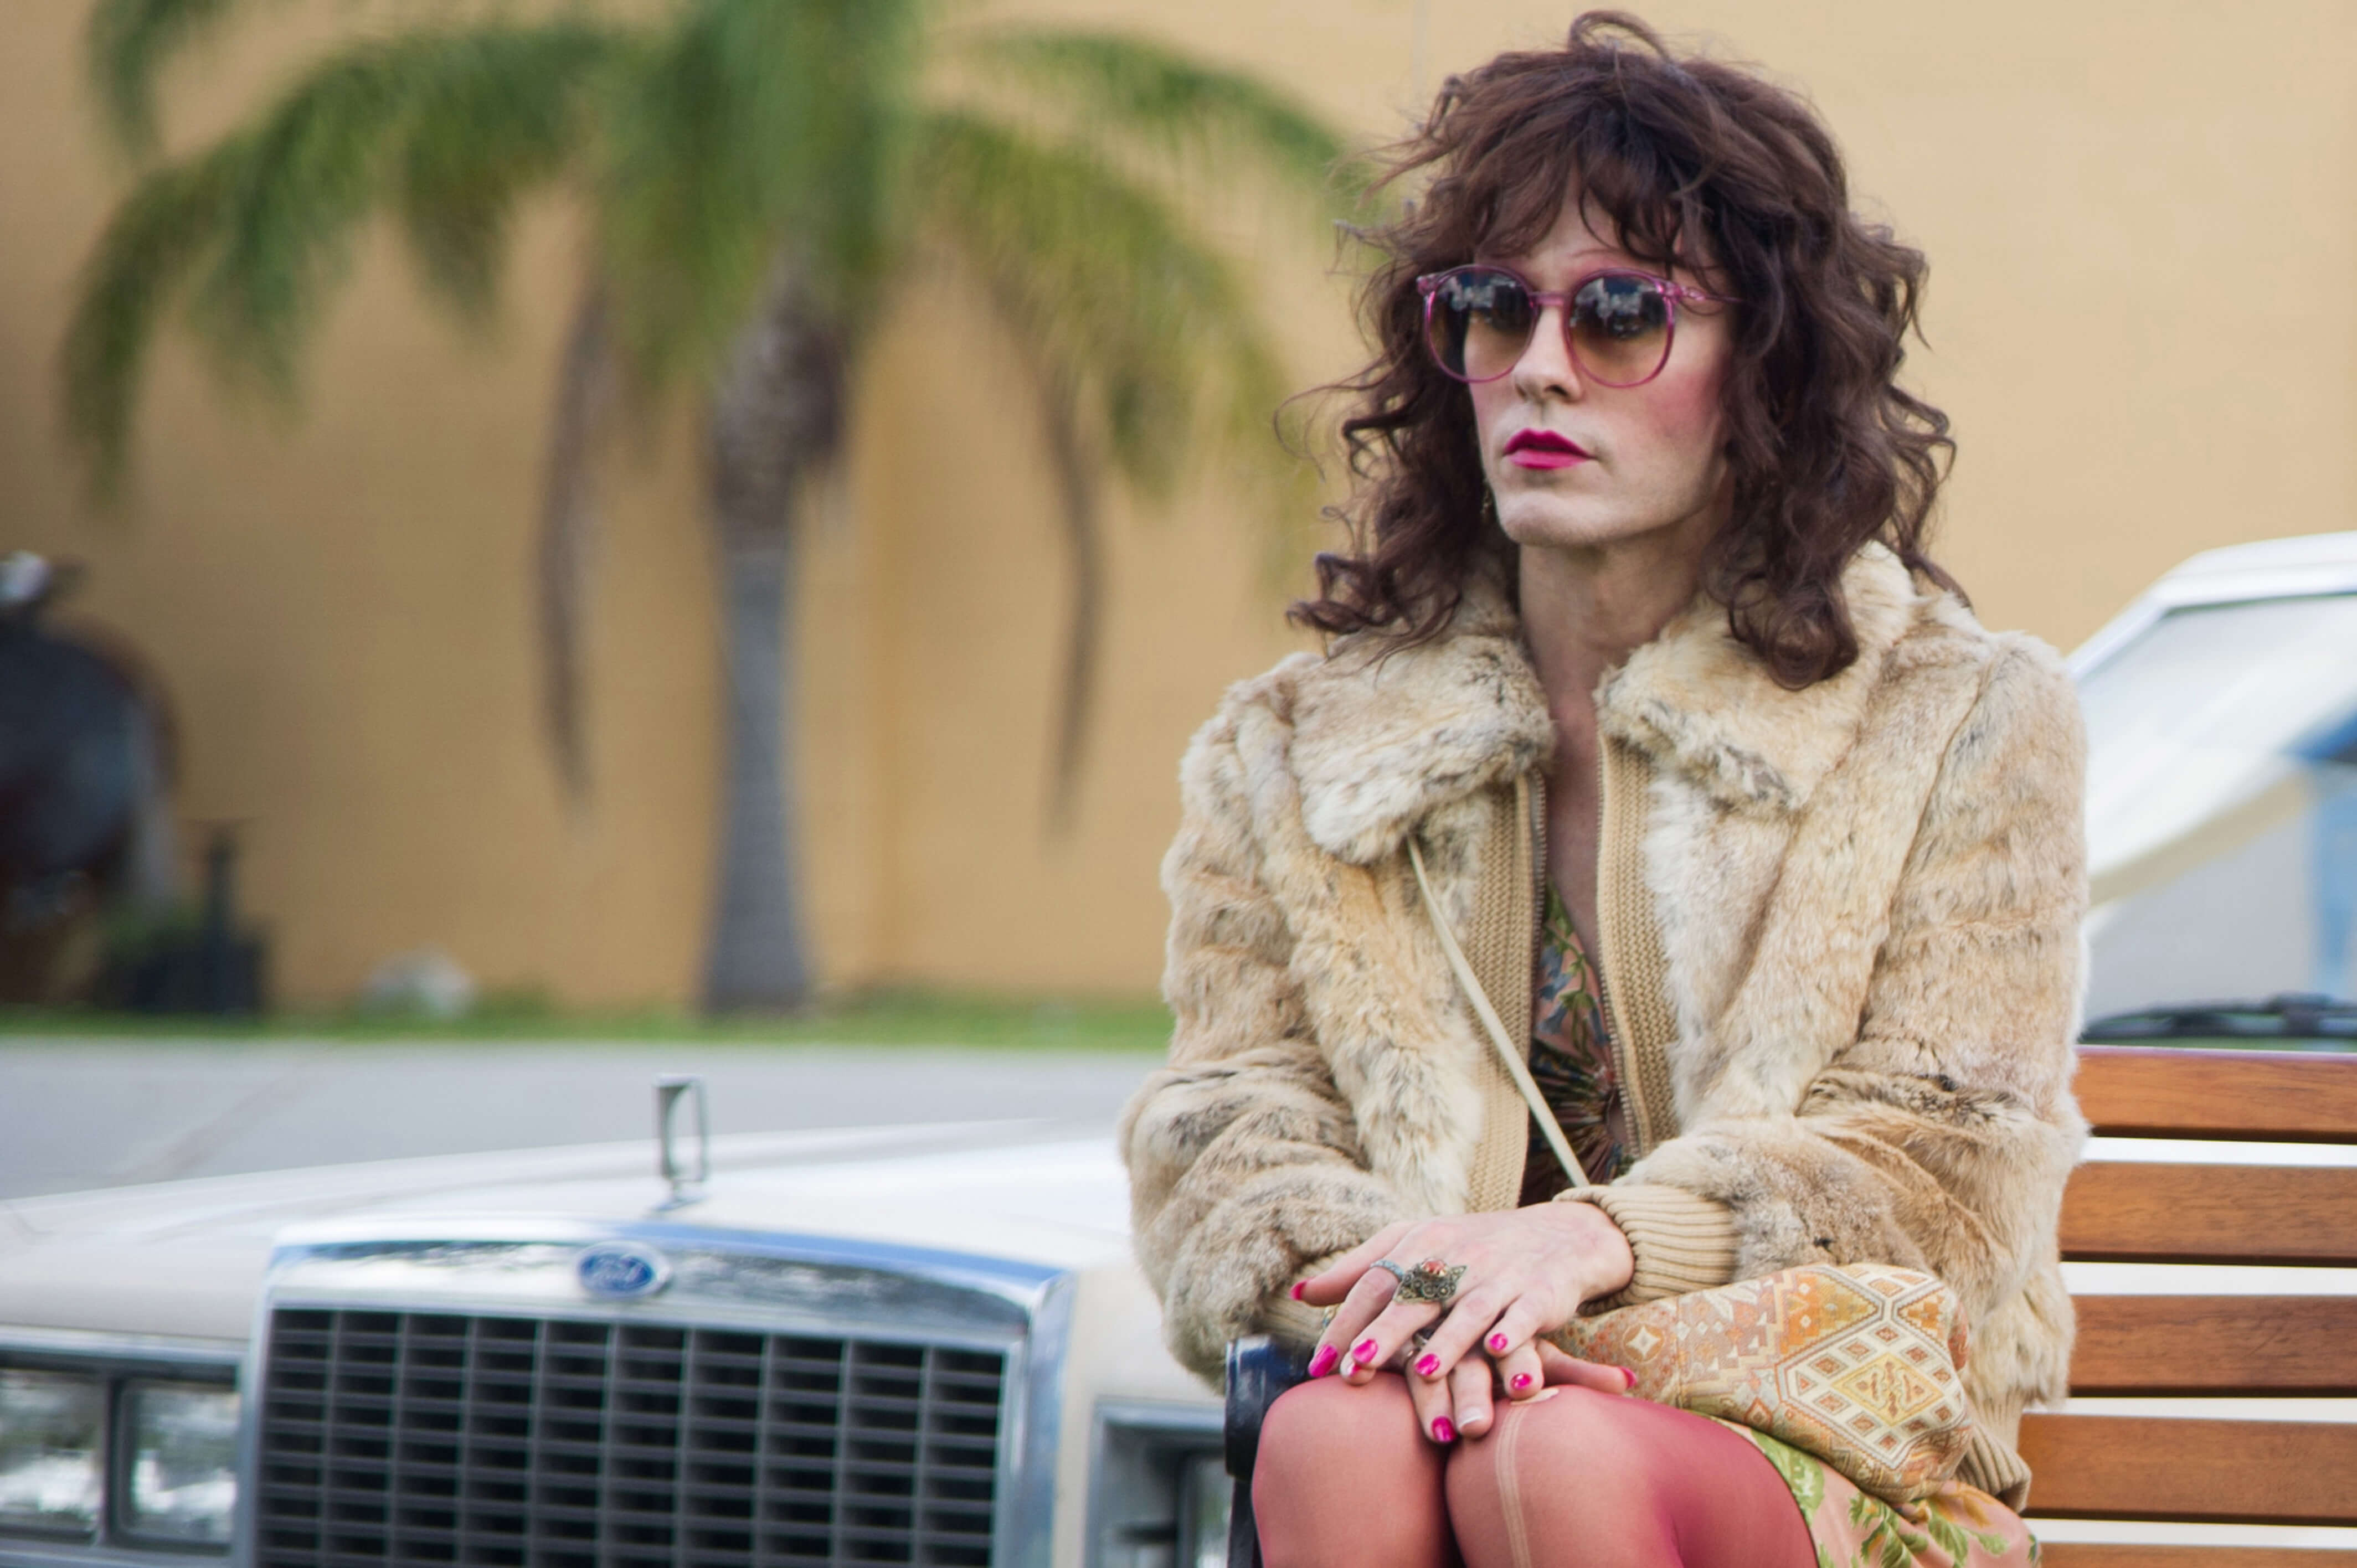 Jared Leto as Rayon in Jean-Marc Vallée's fact-based drama, DALLAS BUYERS CLUB, a Focus Features release. Photo Credit: Anne Marie Fox / Focus Features